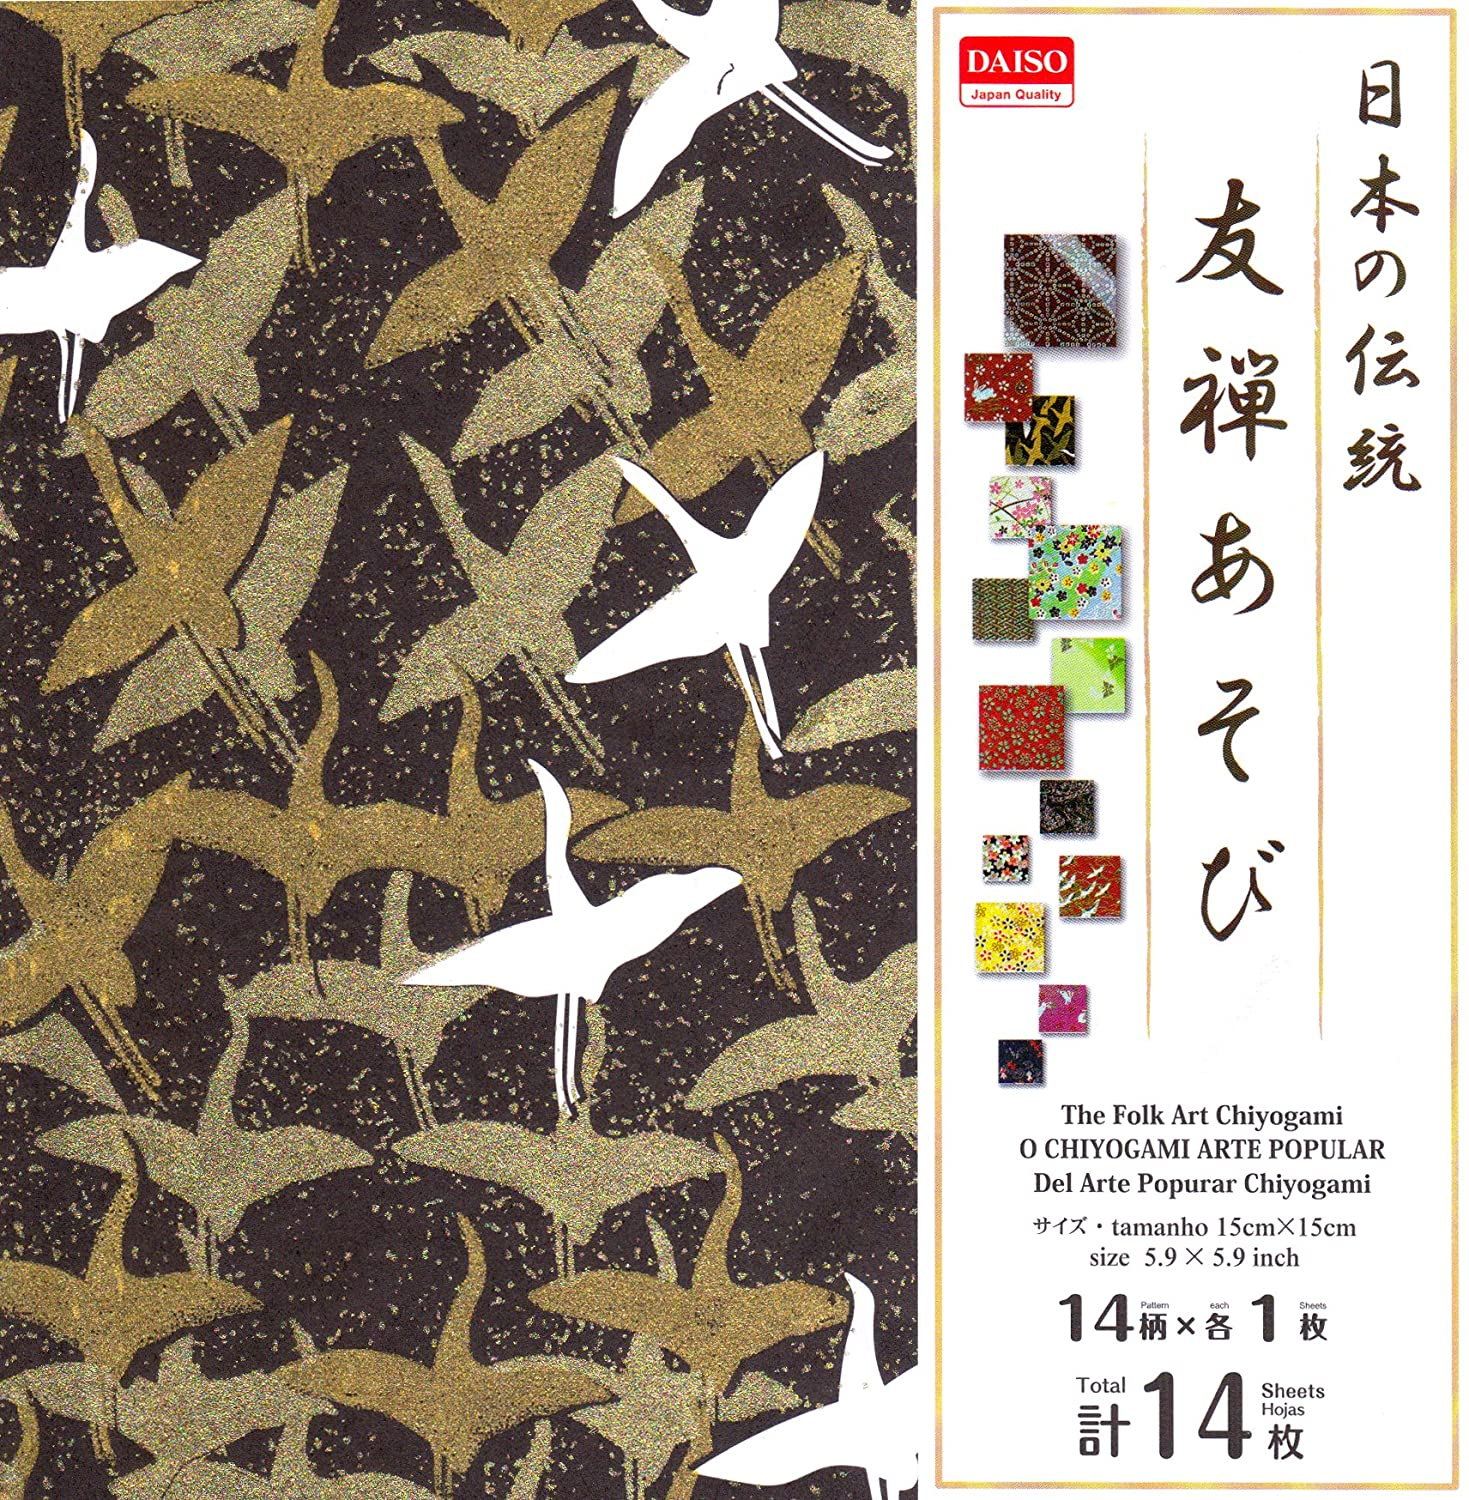 Japanese Origami Traditional Chiyogami patterns, 15cm x 15cm (5.9 x 5.9inch), 14 sheets - Package